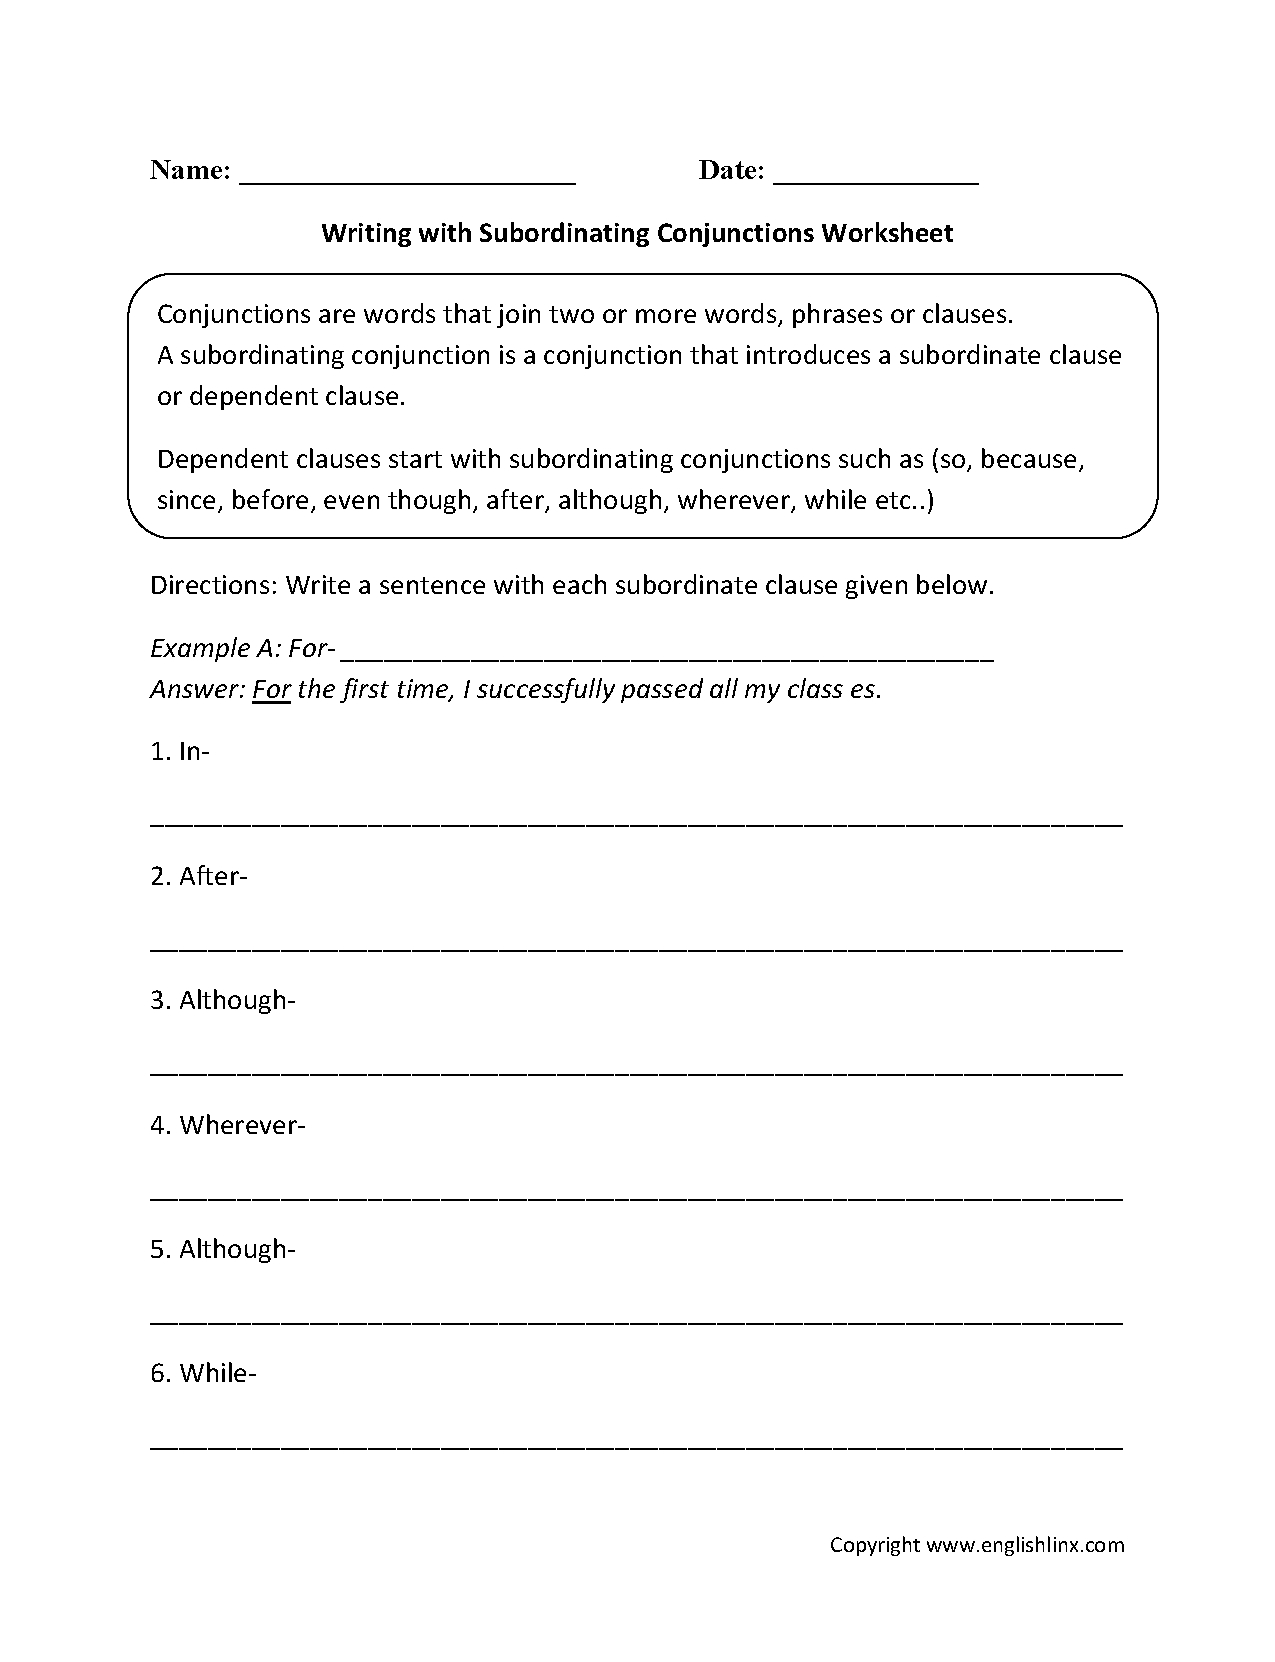 Subordinating Conjunctions Lesson Plan 5th Grade